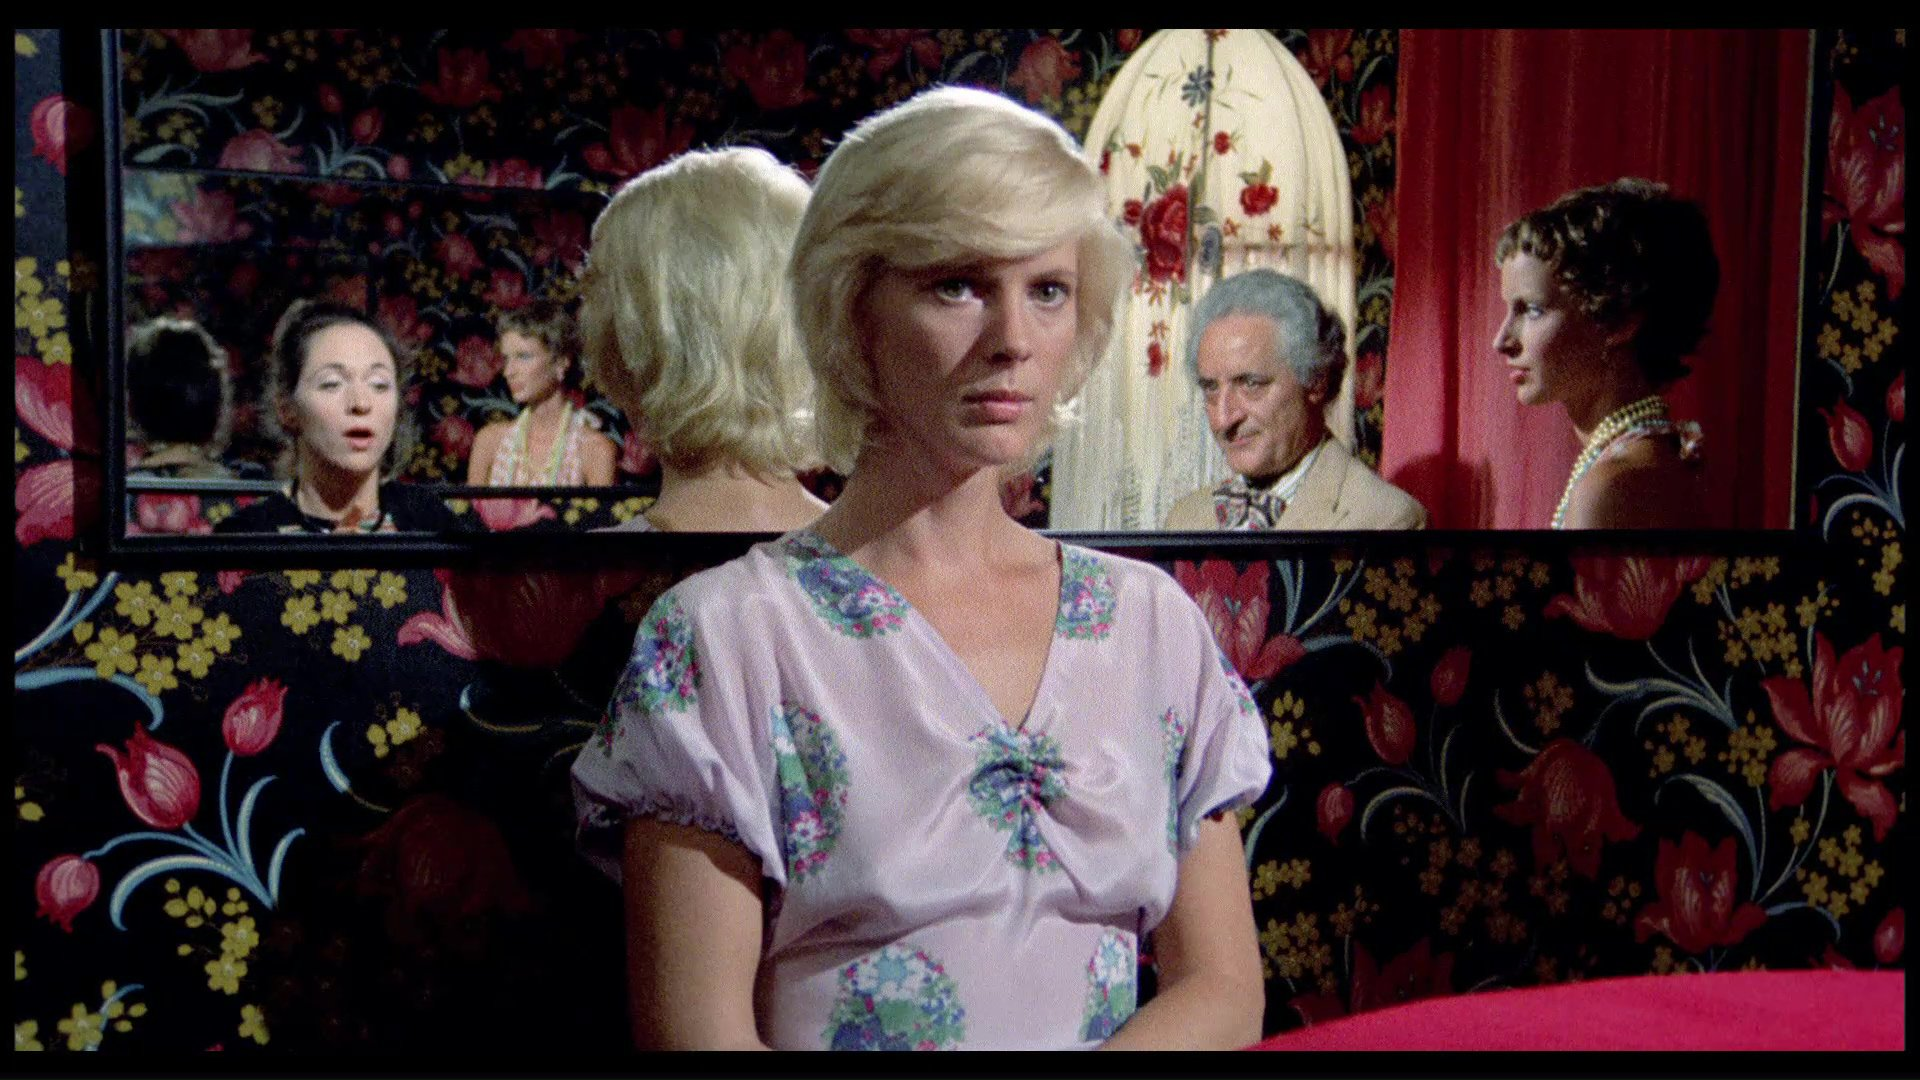 Mimsy Farmer in 'The Perfume of the Lady in Black' (1974)